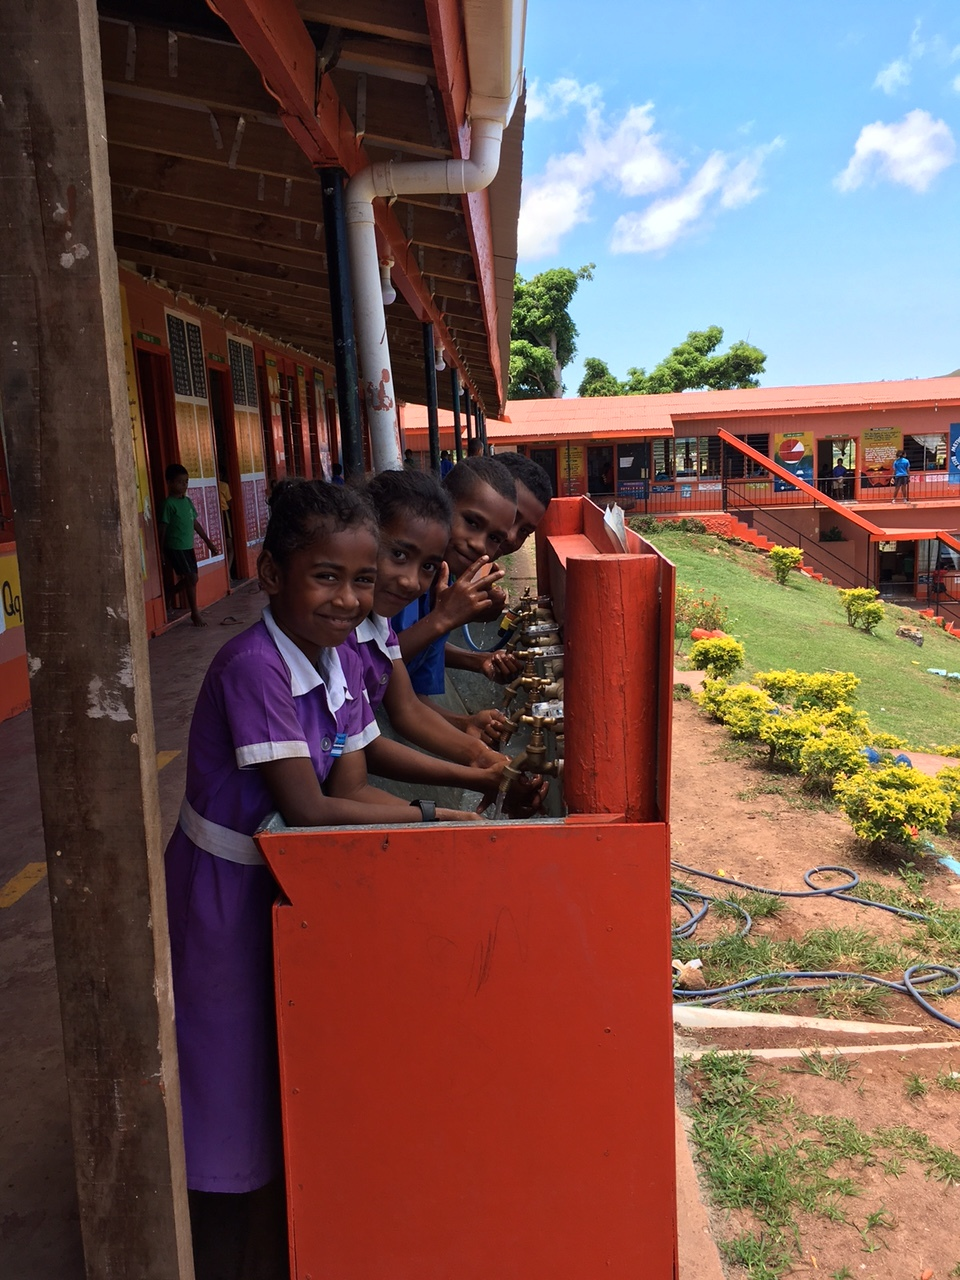 Post cyclone rehabilitation of remote school water supply and sanitation facilities, Fiji.